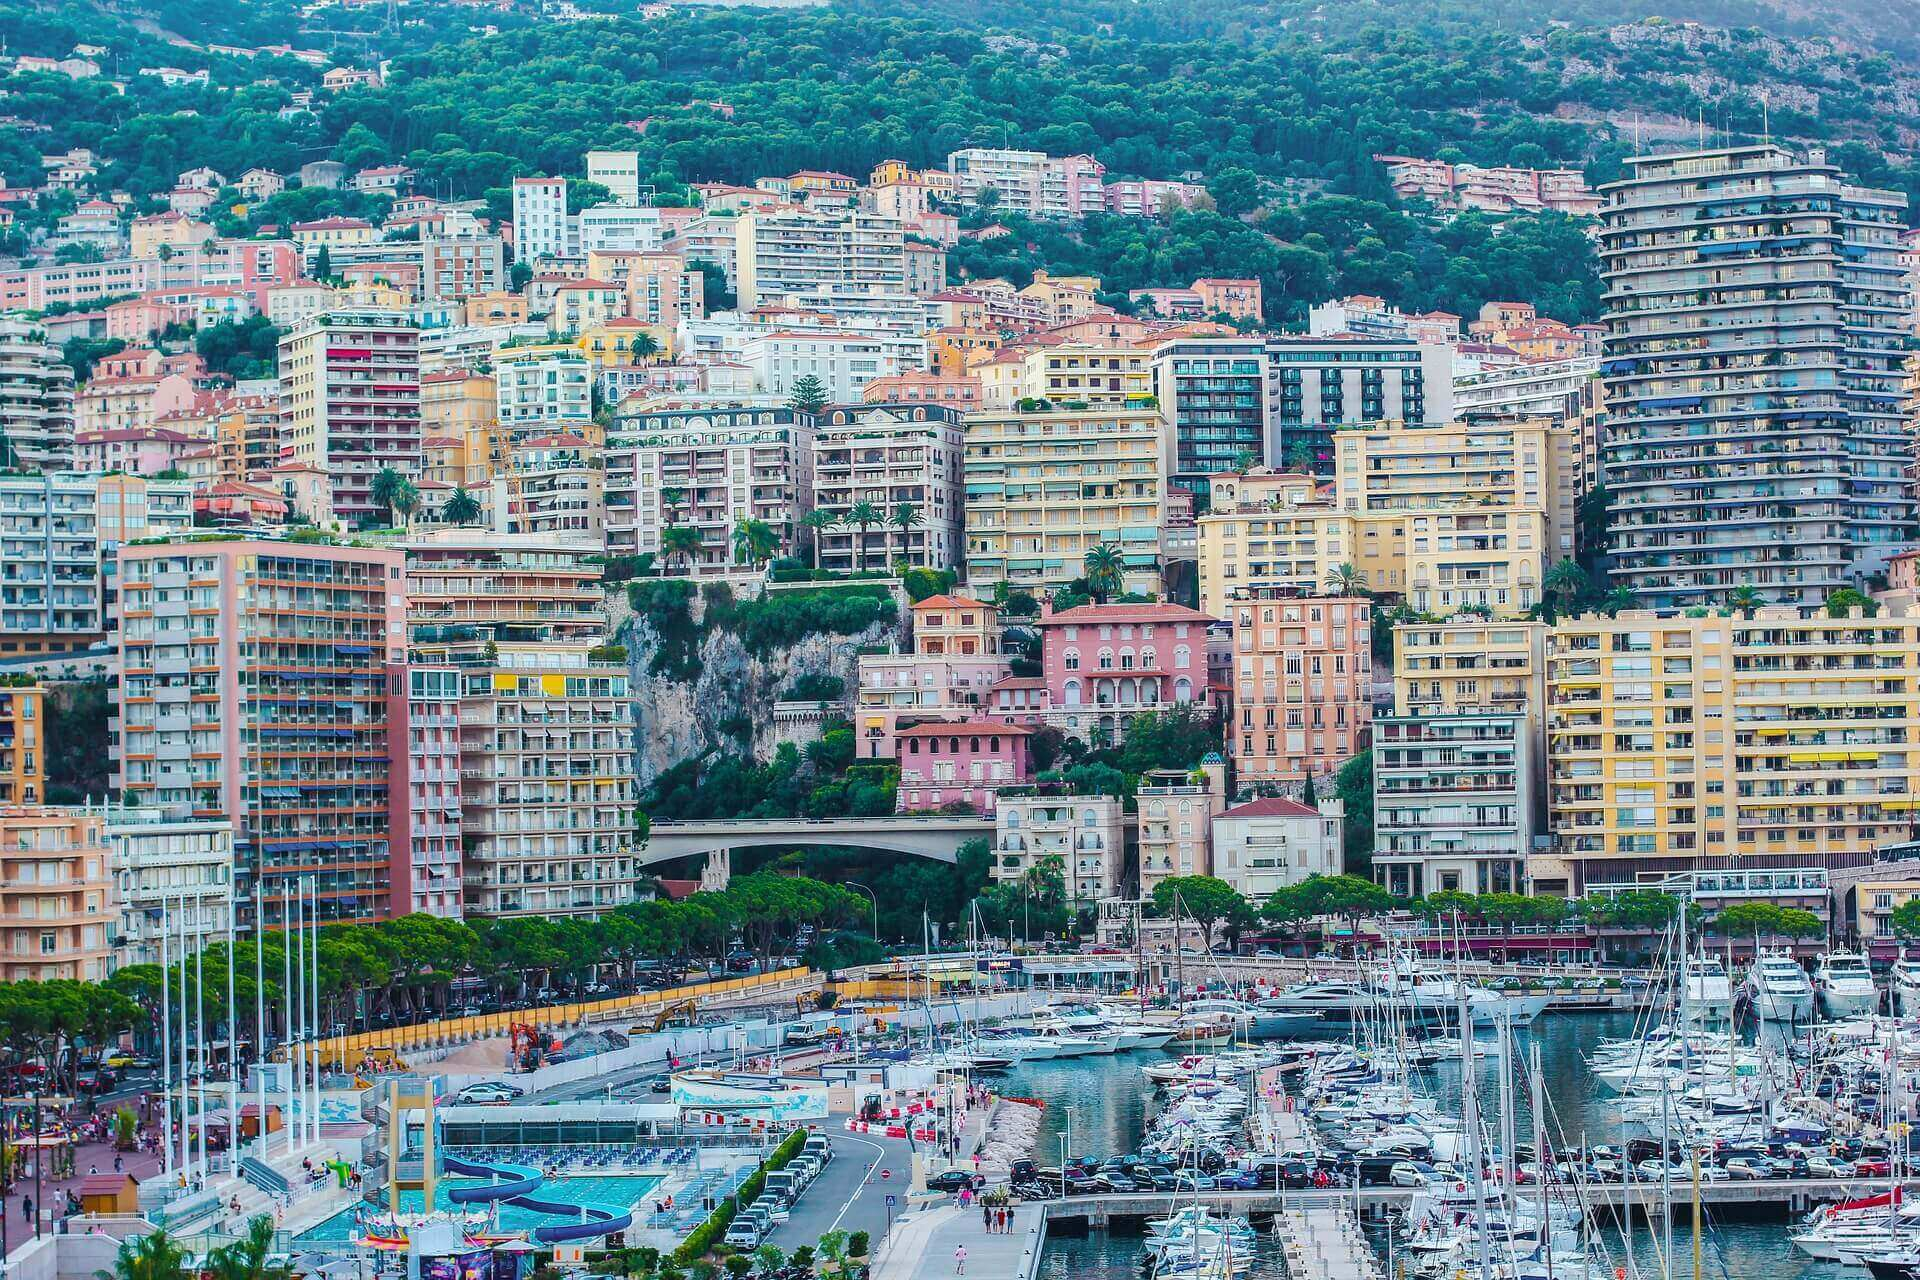 Top 10 Tourist Attraction To Visit in Monaco